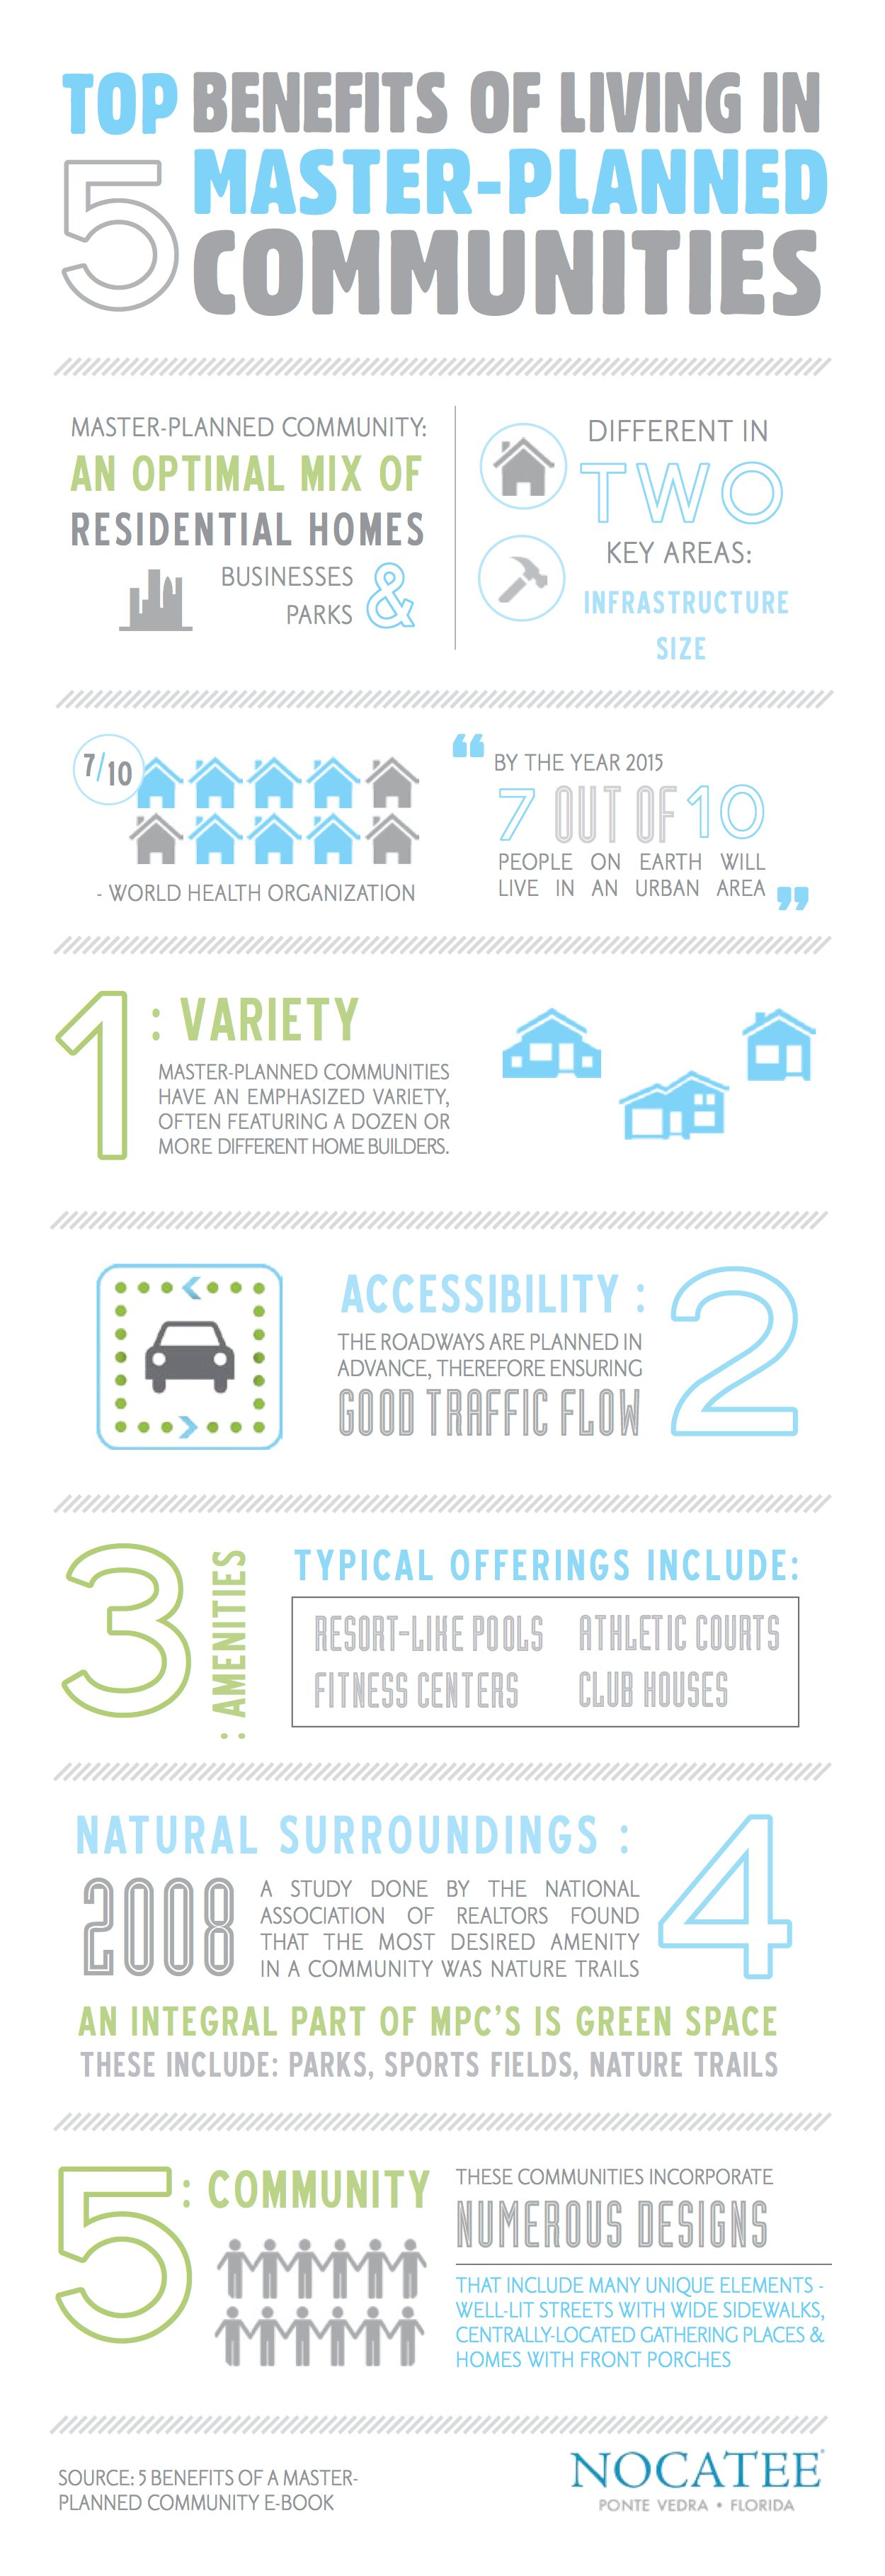 top five benefits of living in a master-planned community